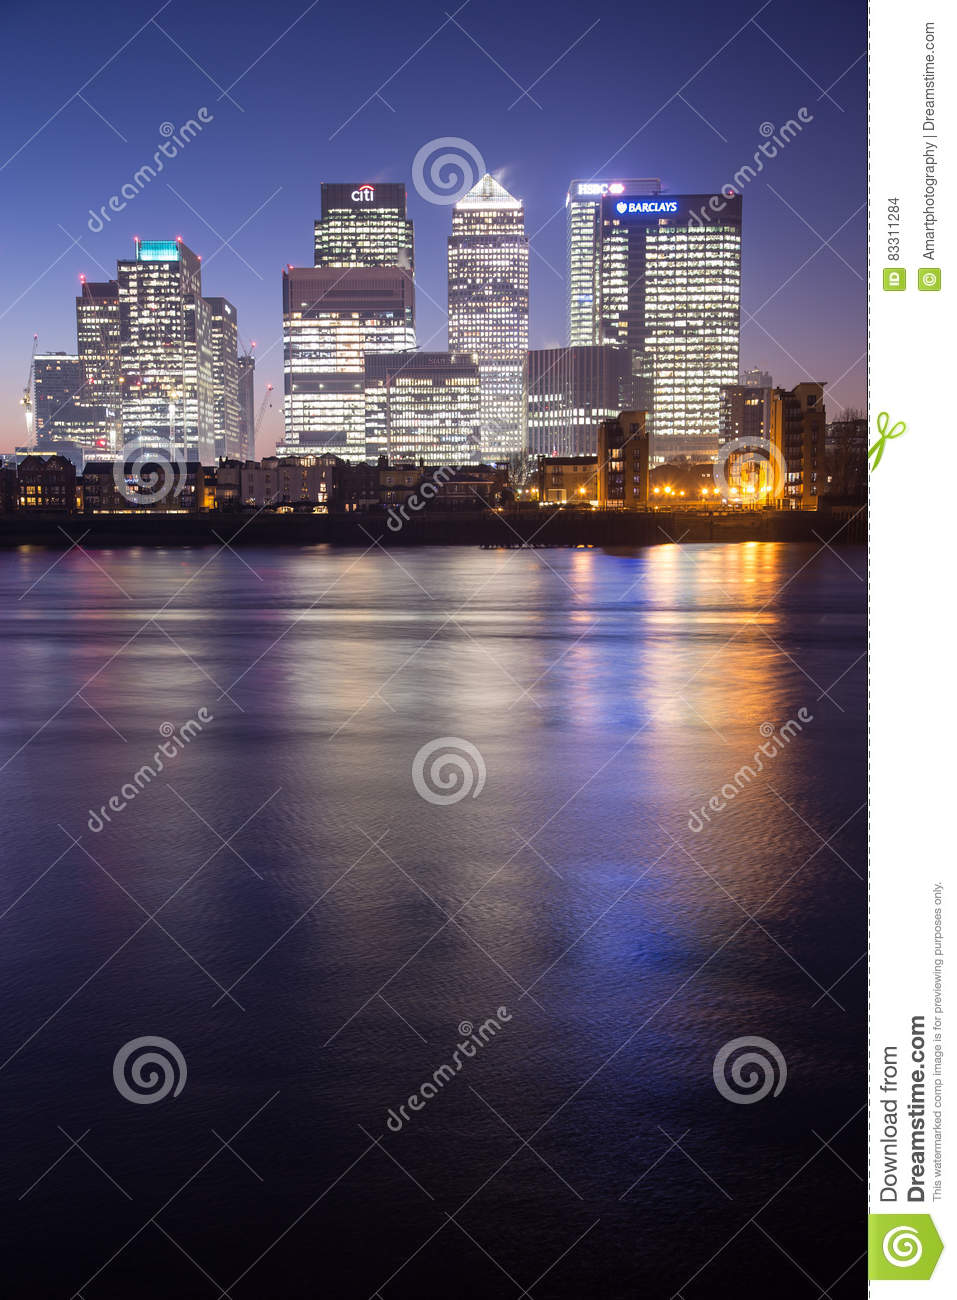 London Banks England editorial stock image  Image of color - 83311284